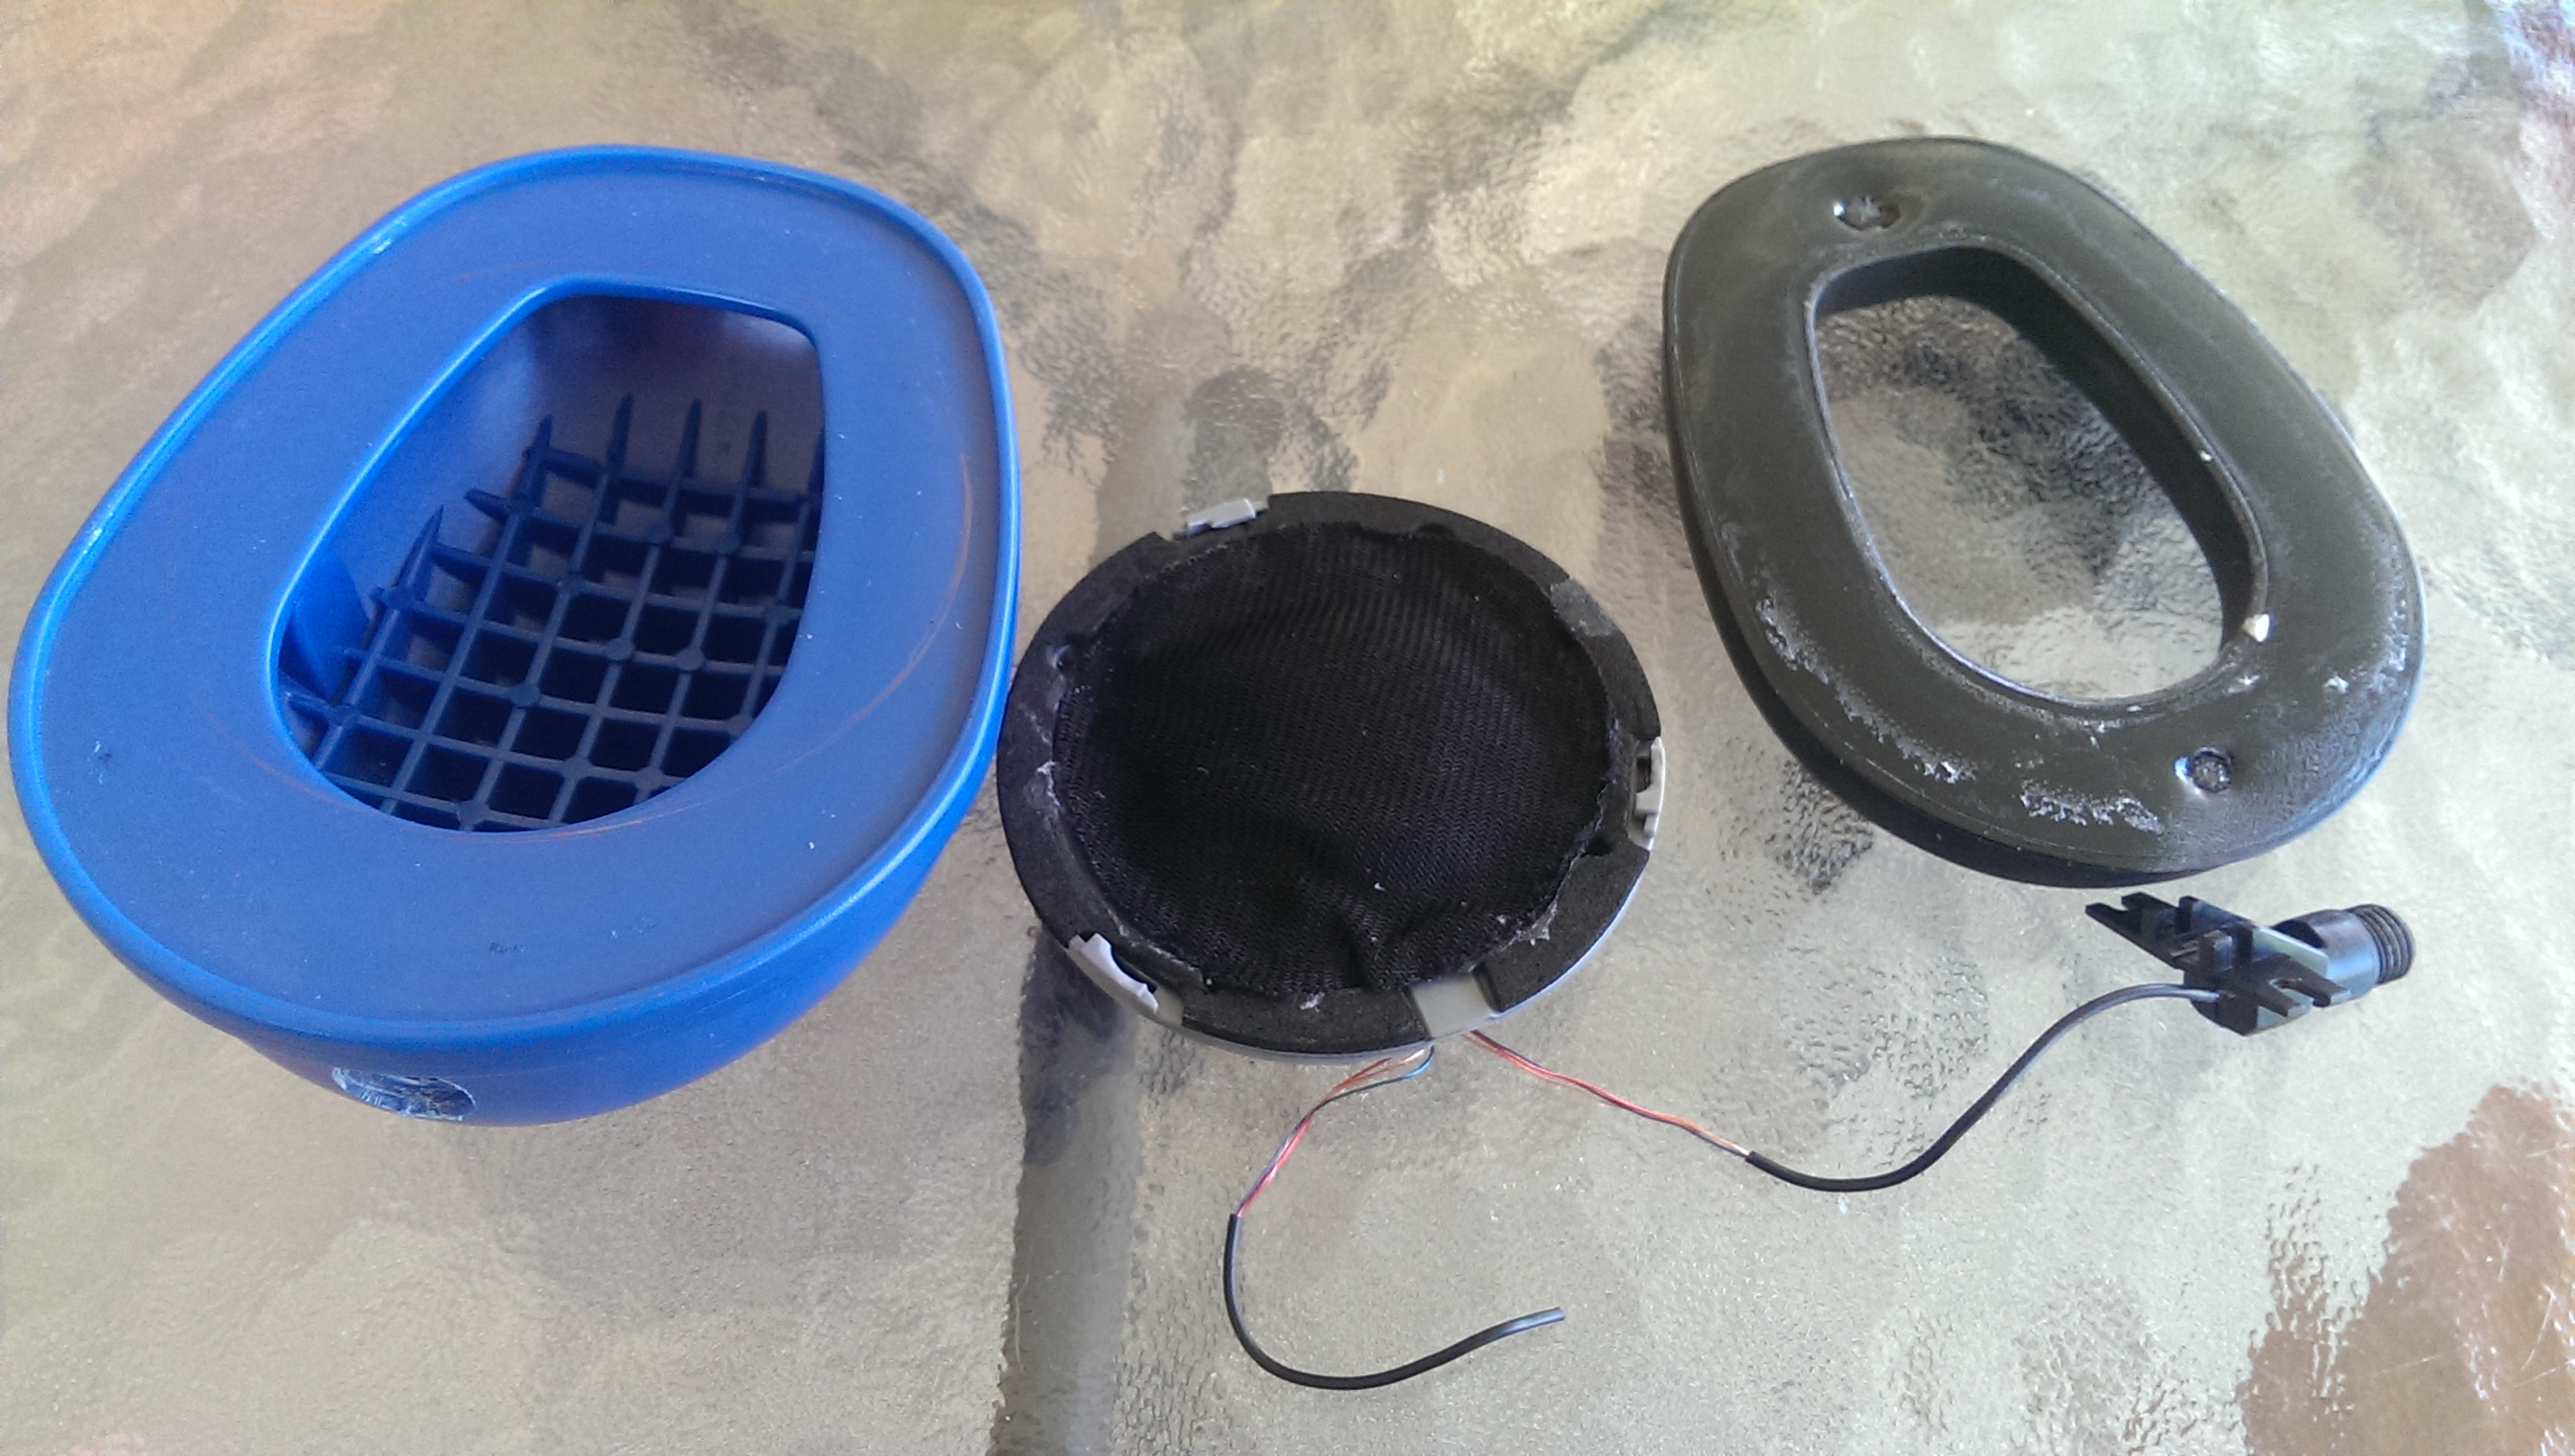 Picture of This Is the Ear Cup and Cushion From the 3M Muffs.  the Speaker You See in the Middle Will Fit Inside.